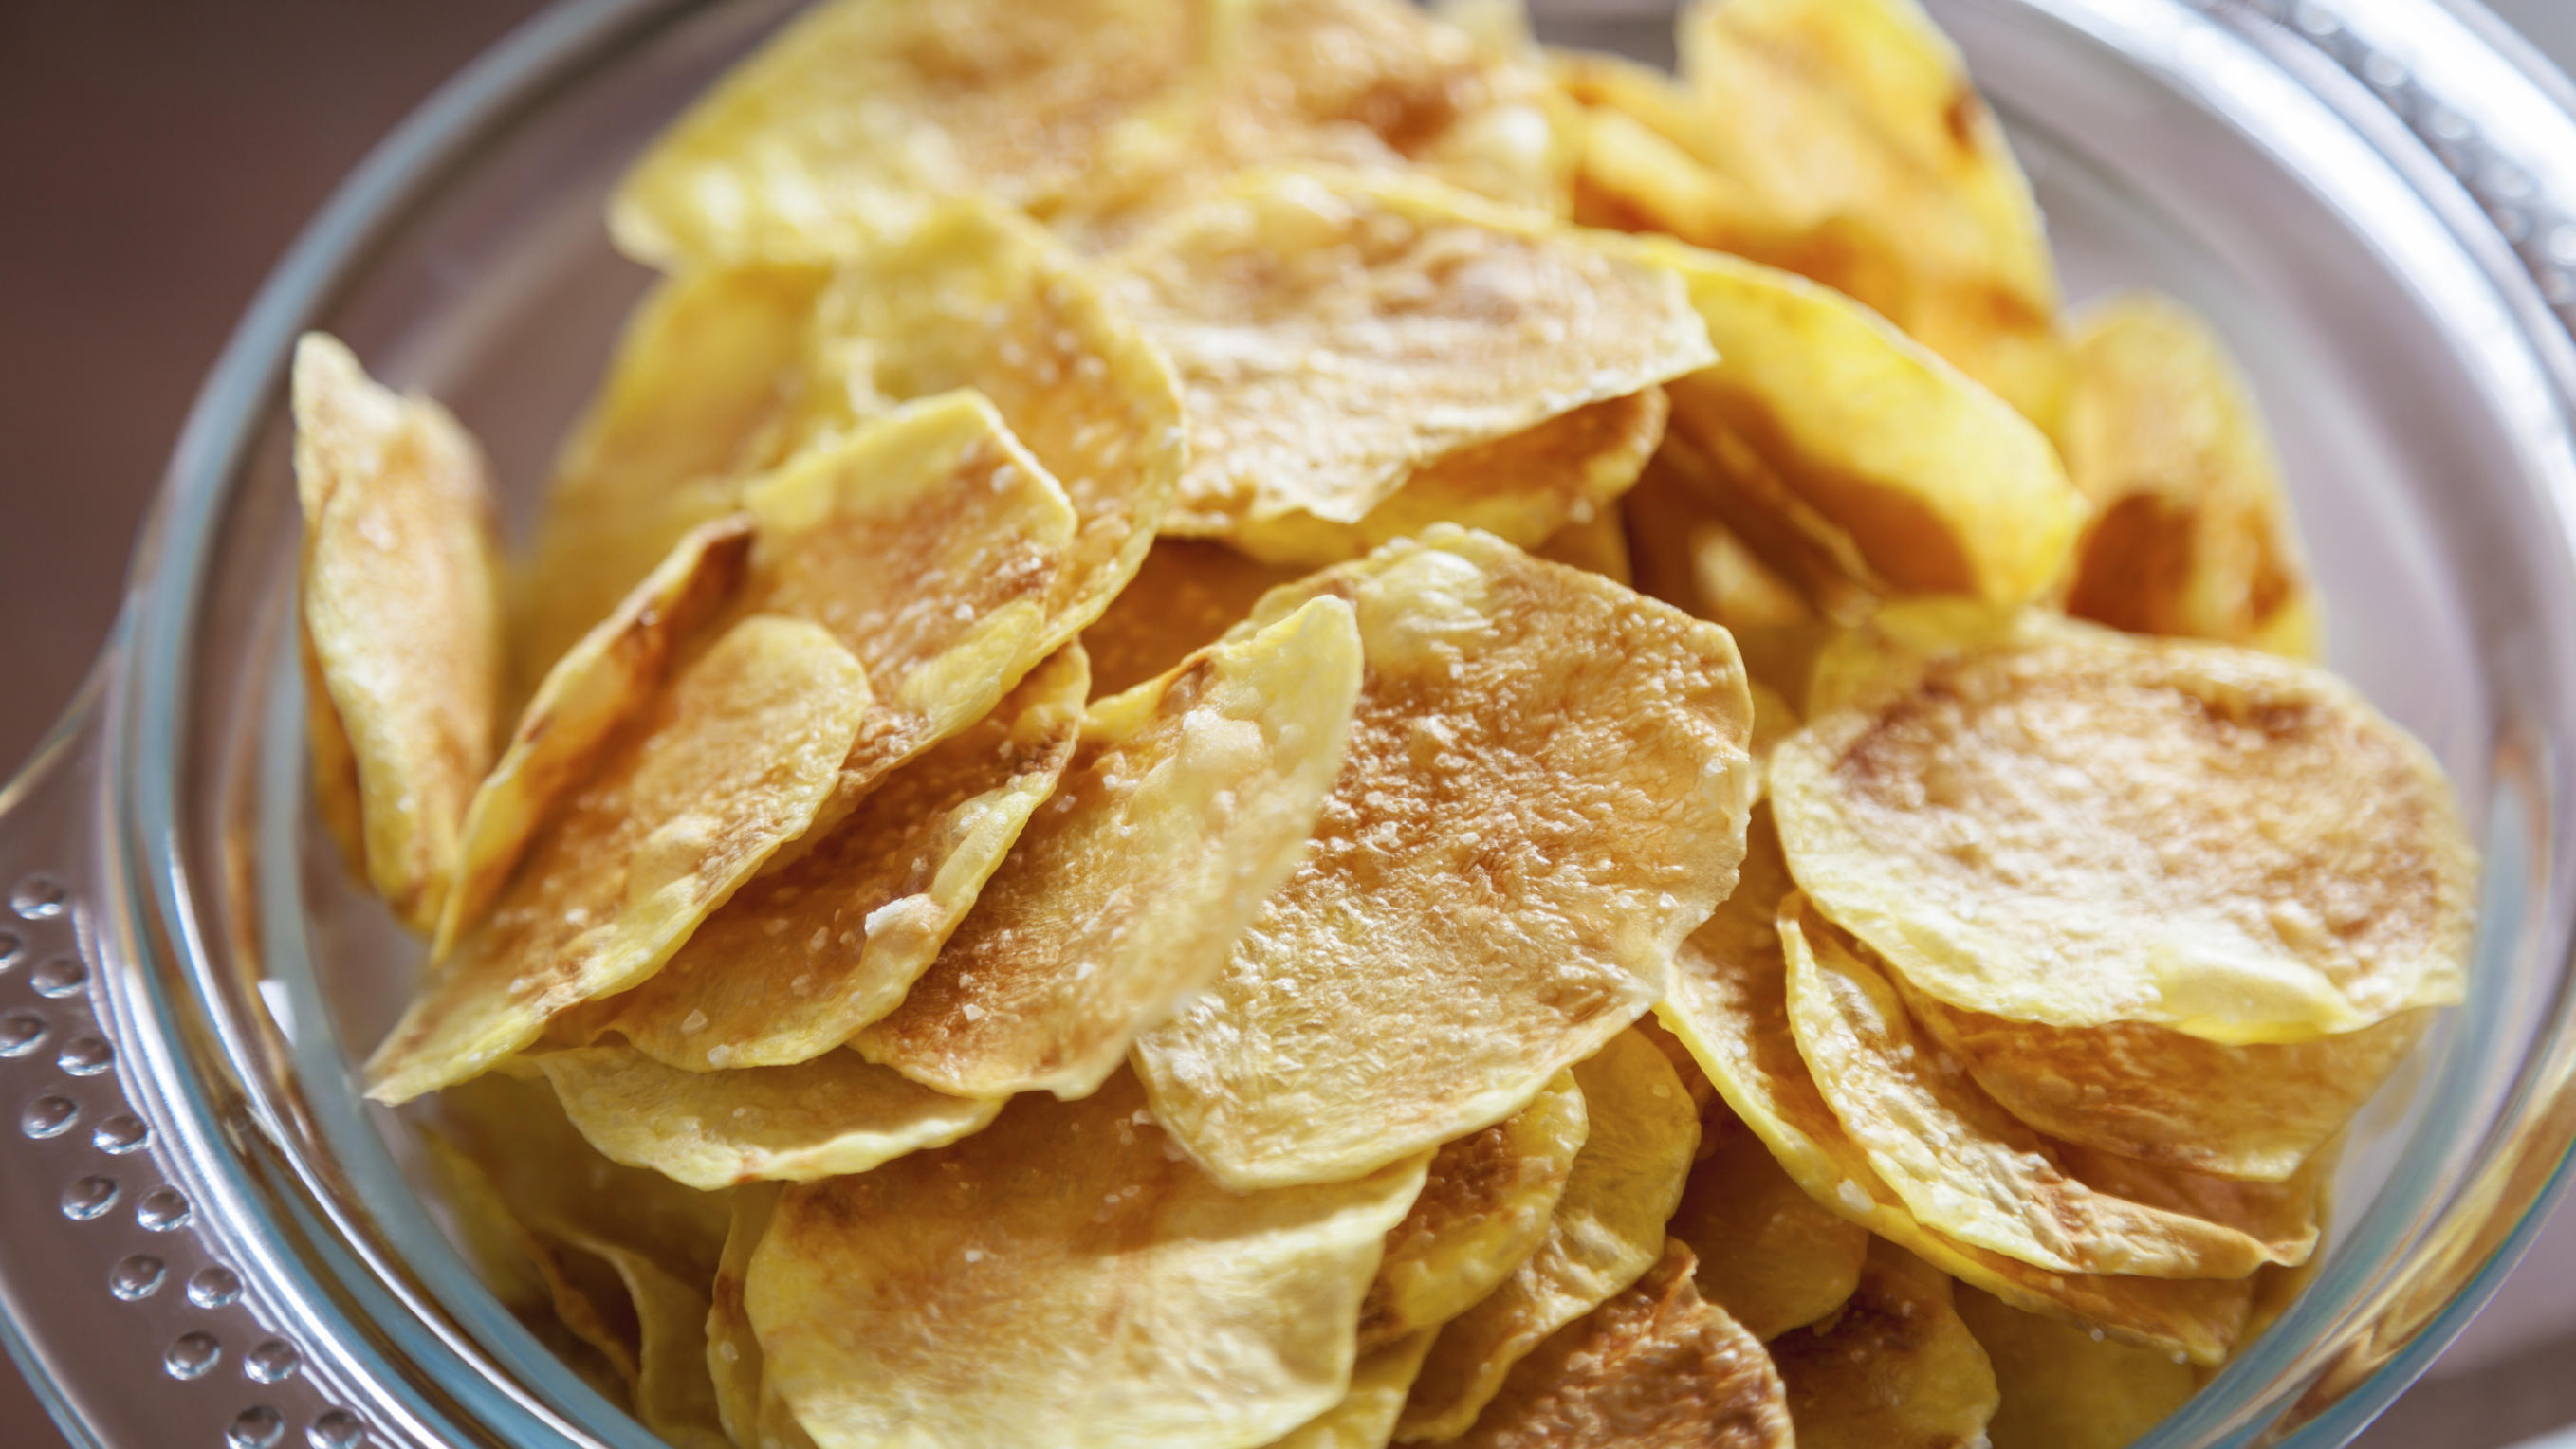 Delicious homemade potato chips in a glass bowl